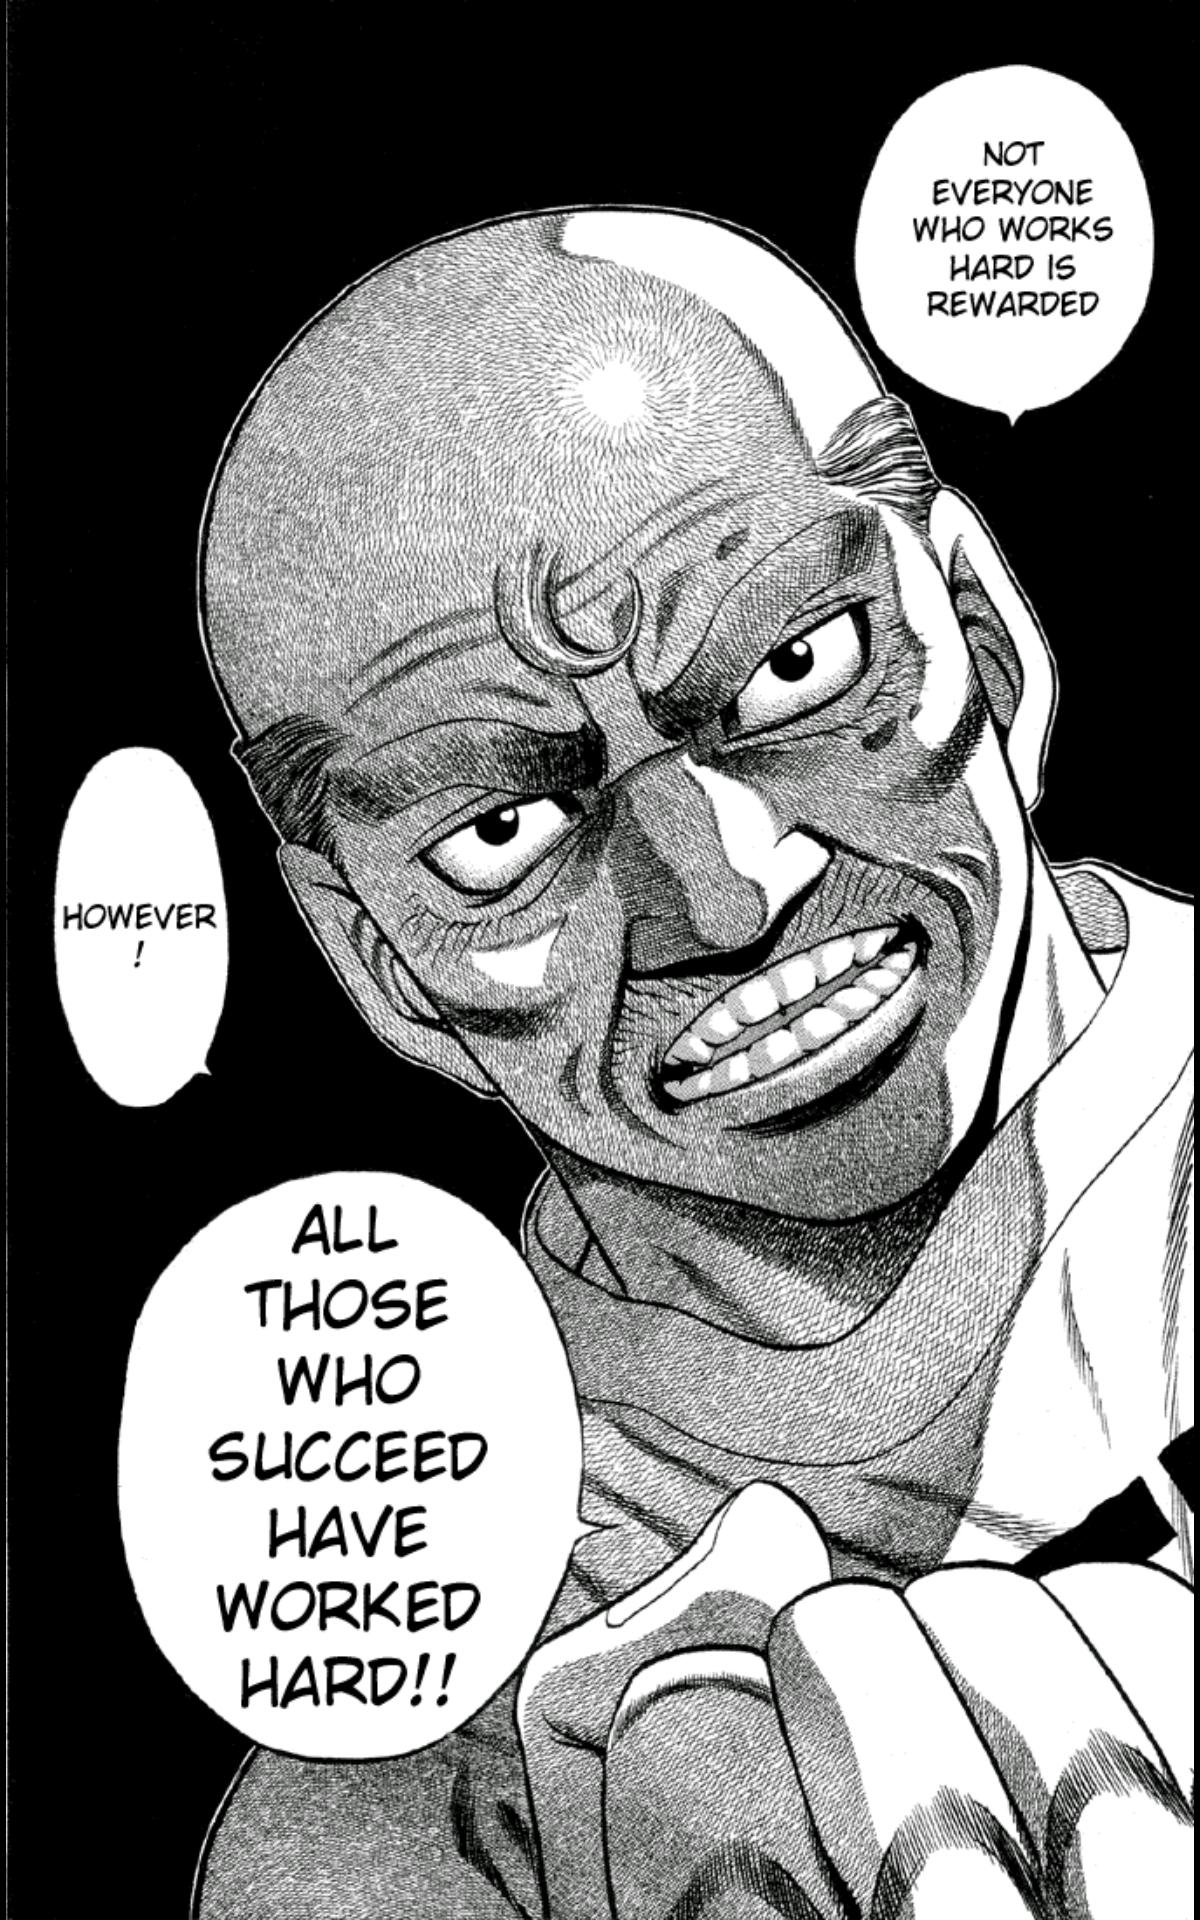 [Image] Wise words from the Manga Hajime no ippo